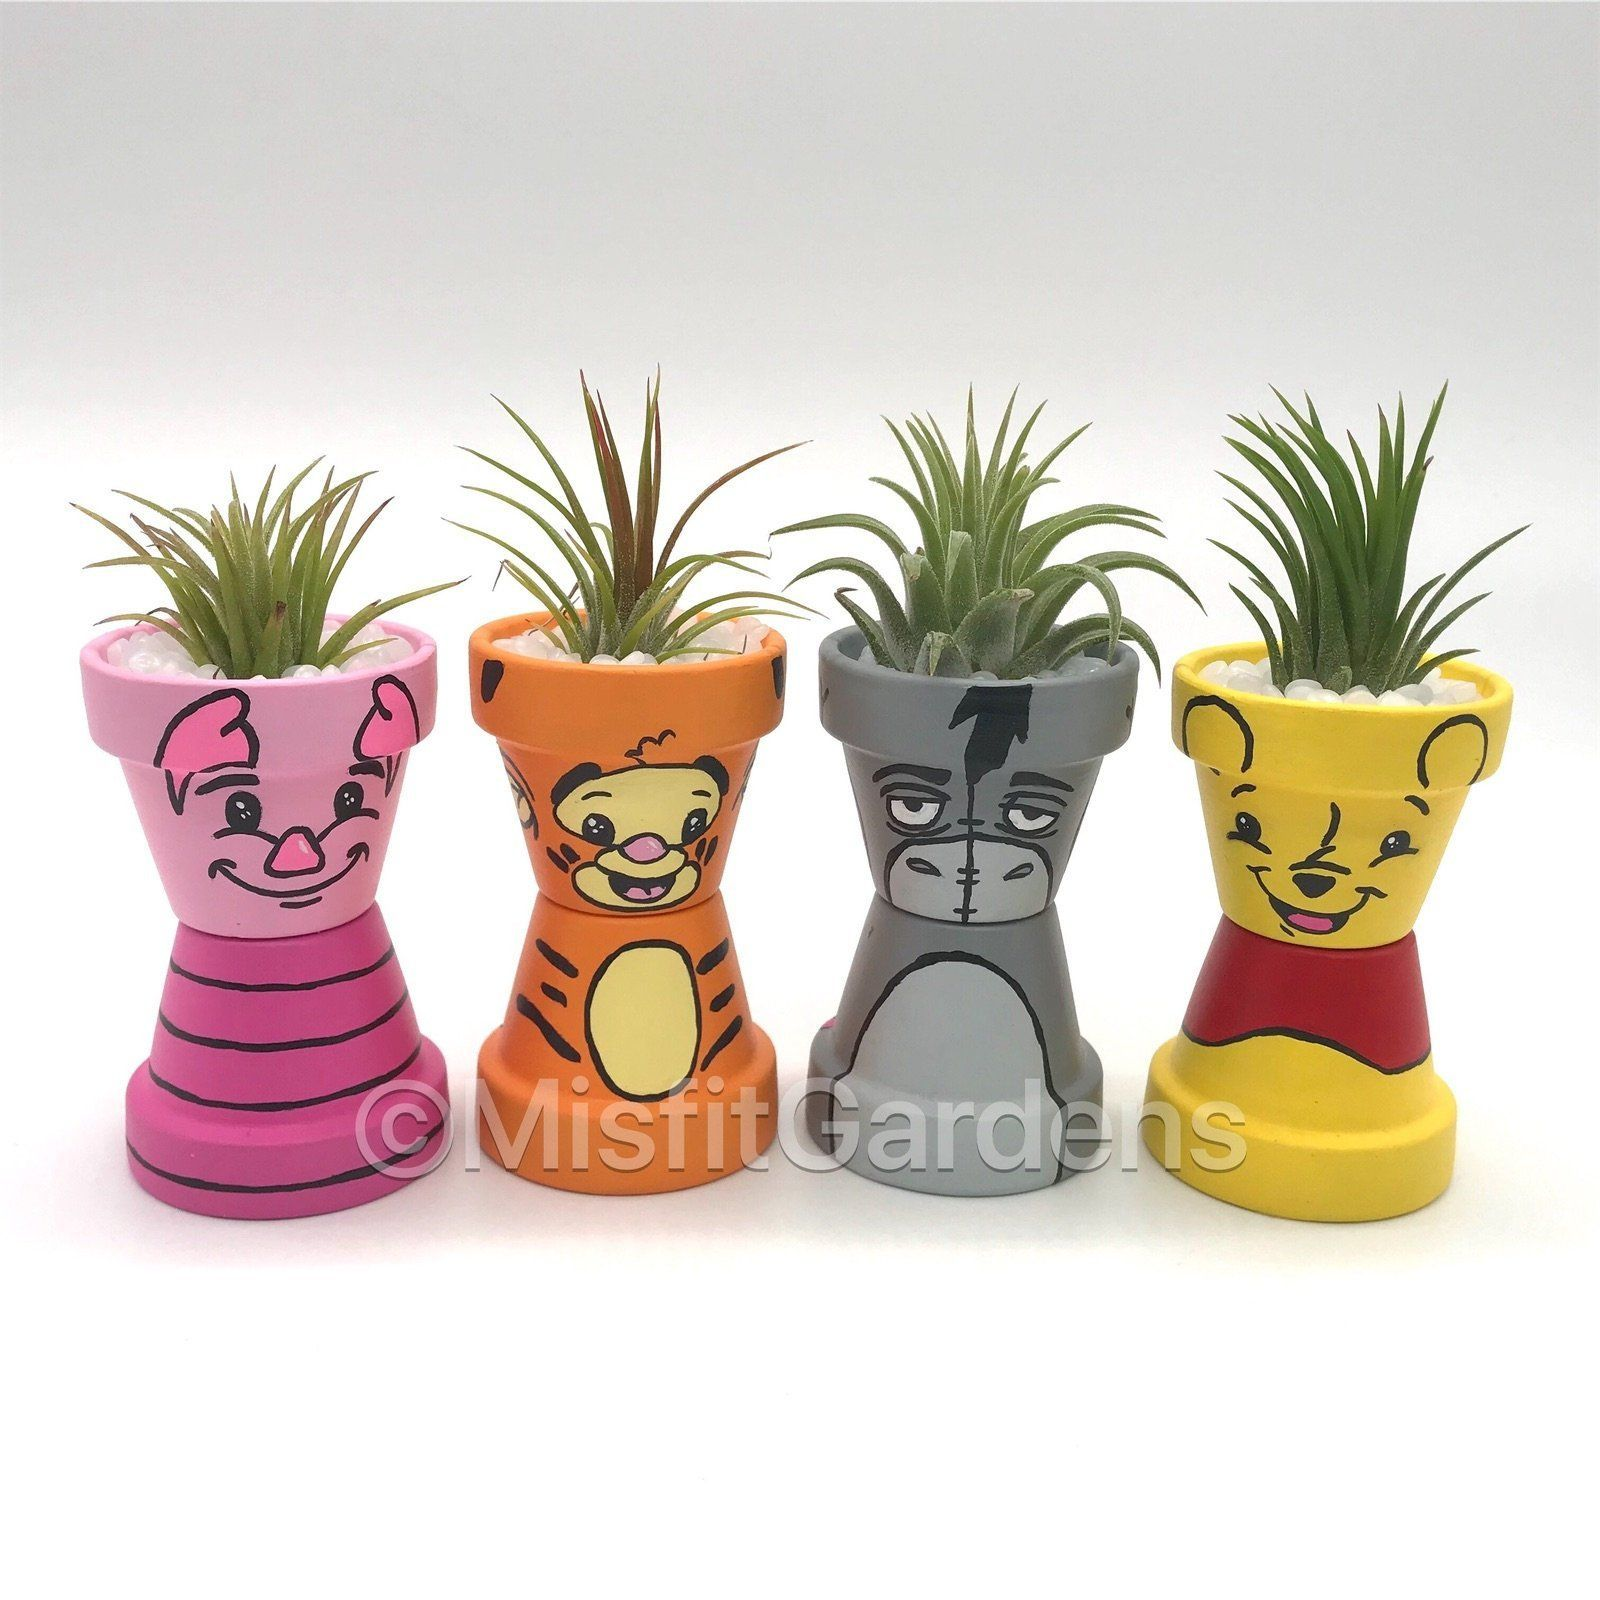 Winnie the Pooh and Friends - Mini Air Plant Holder Set with Plants #flowerpot